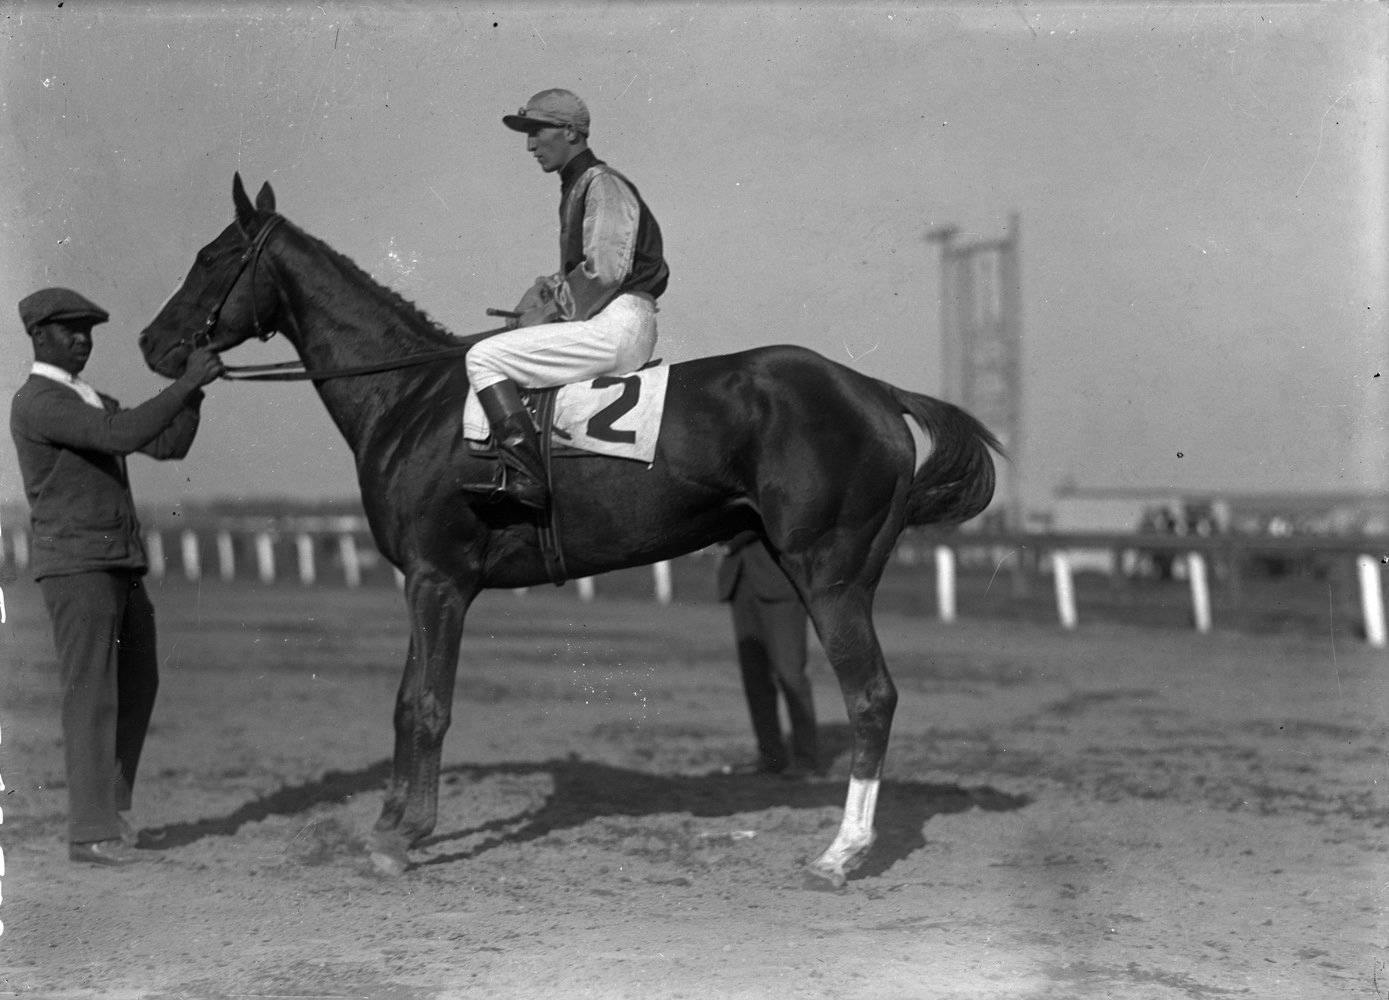 Sarazen with G. Babin up in 1924 (Keeneland Library Cook Collection)